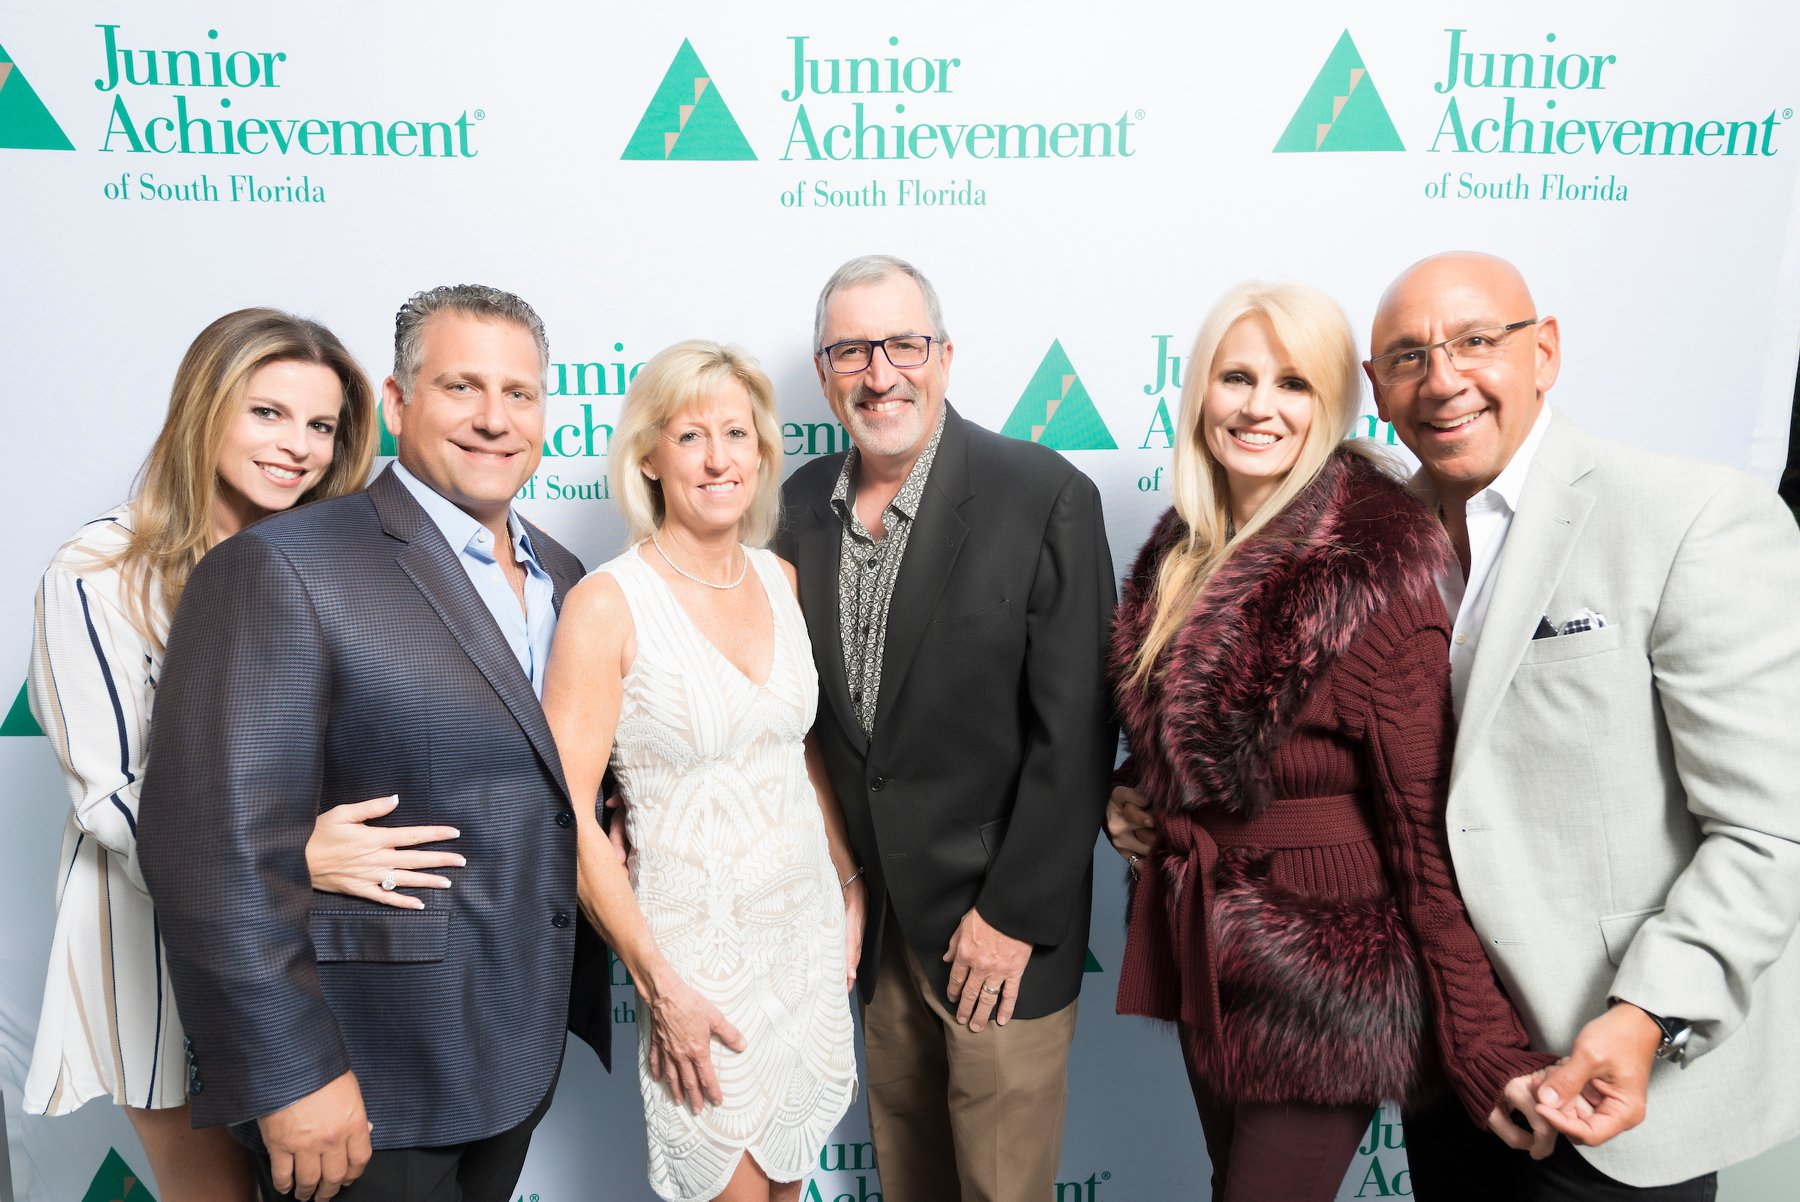 Annual Light Up The Night Raises Funds And Awareness For Junior Achievement of South Florida